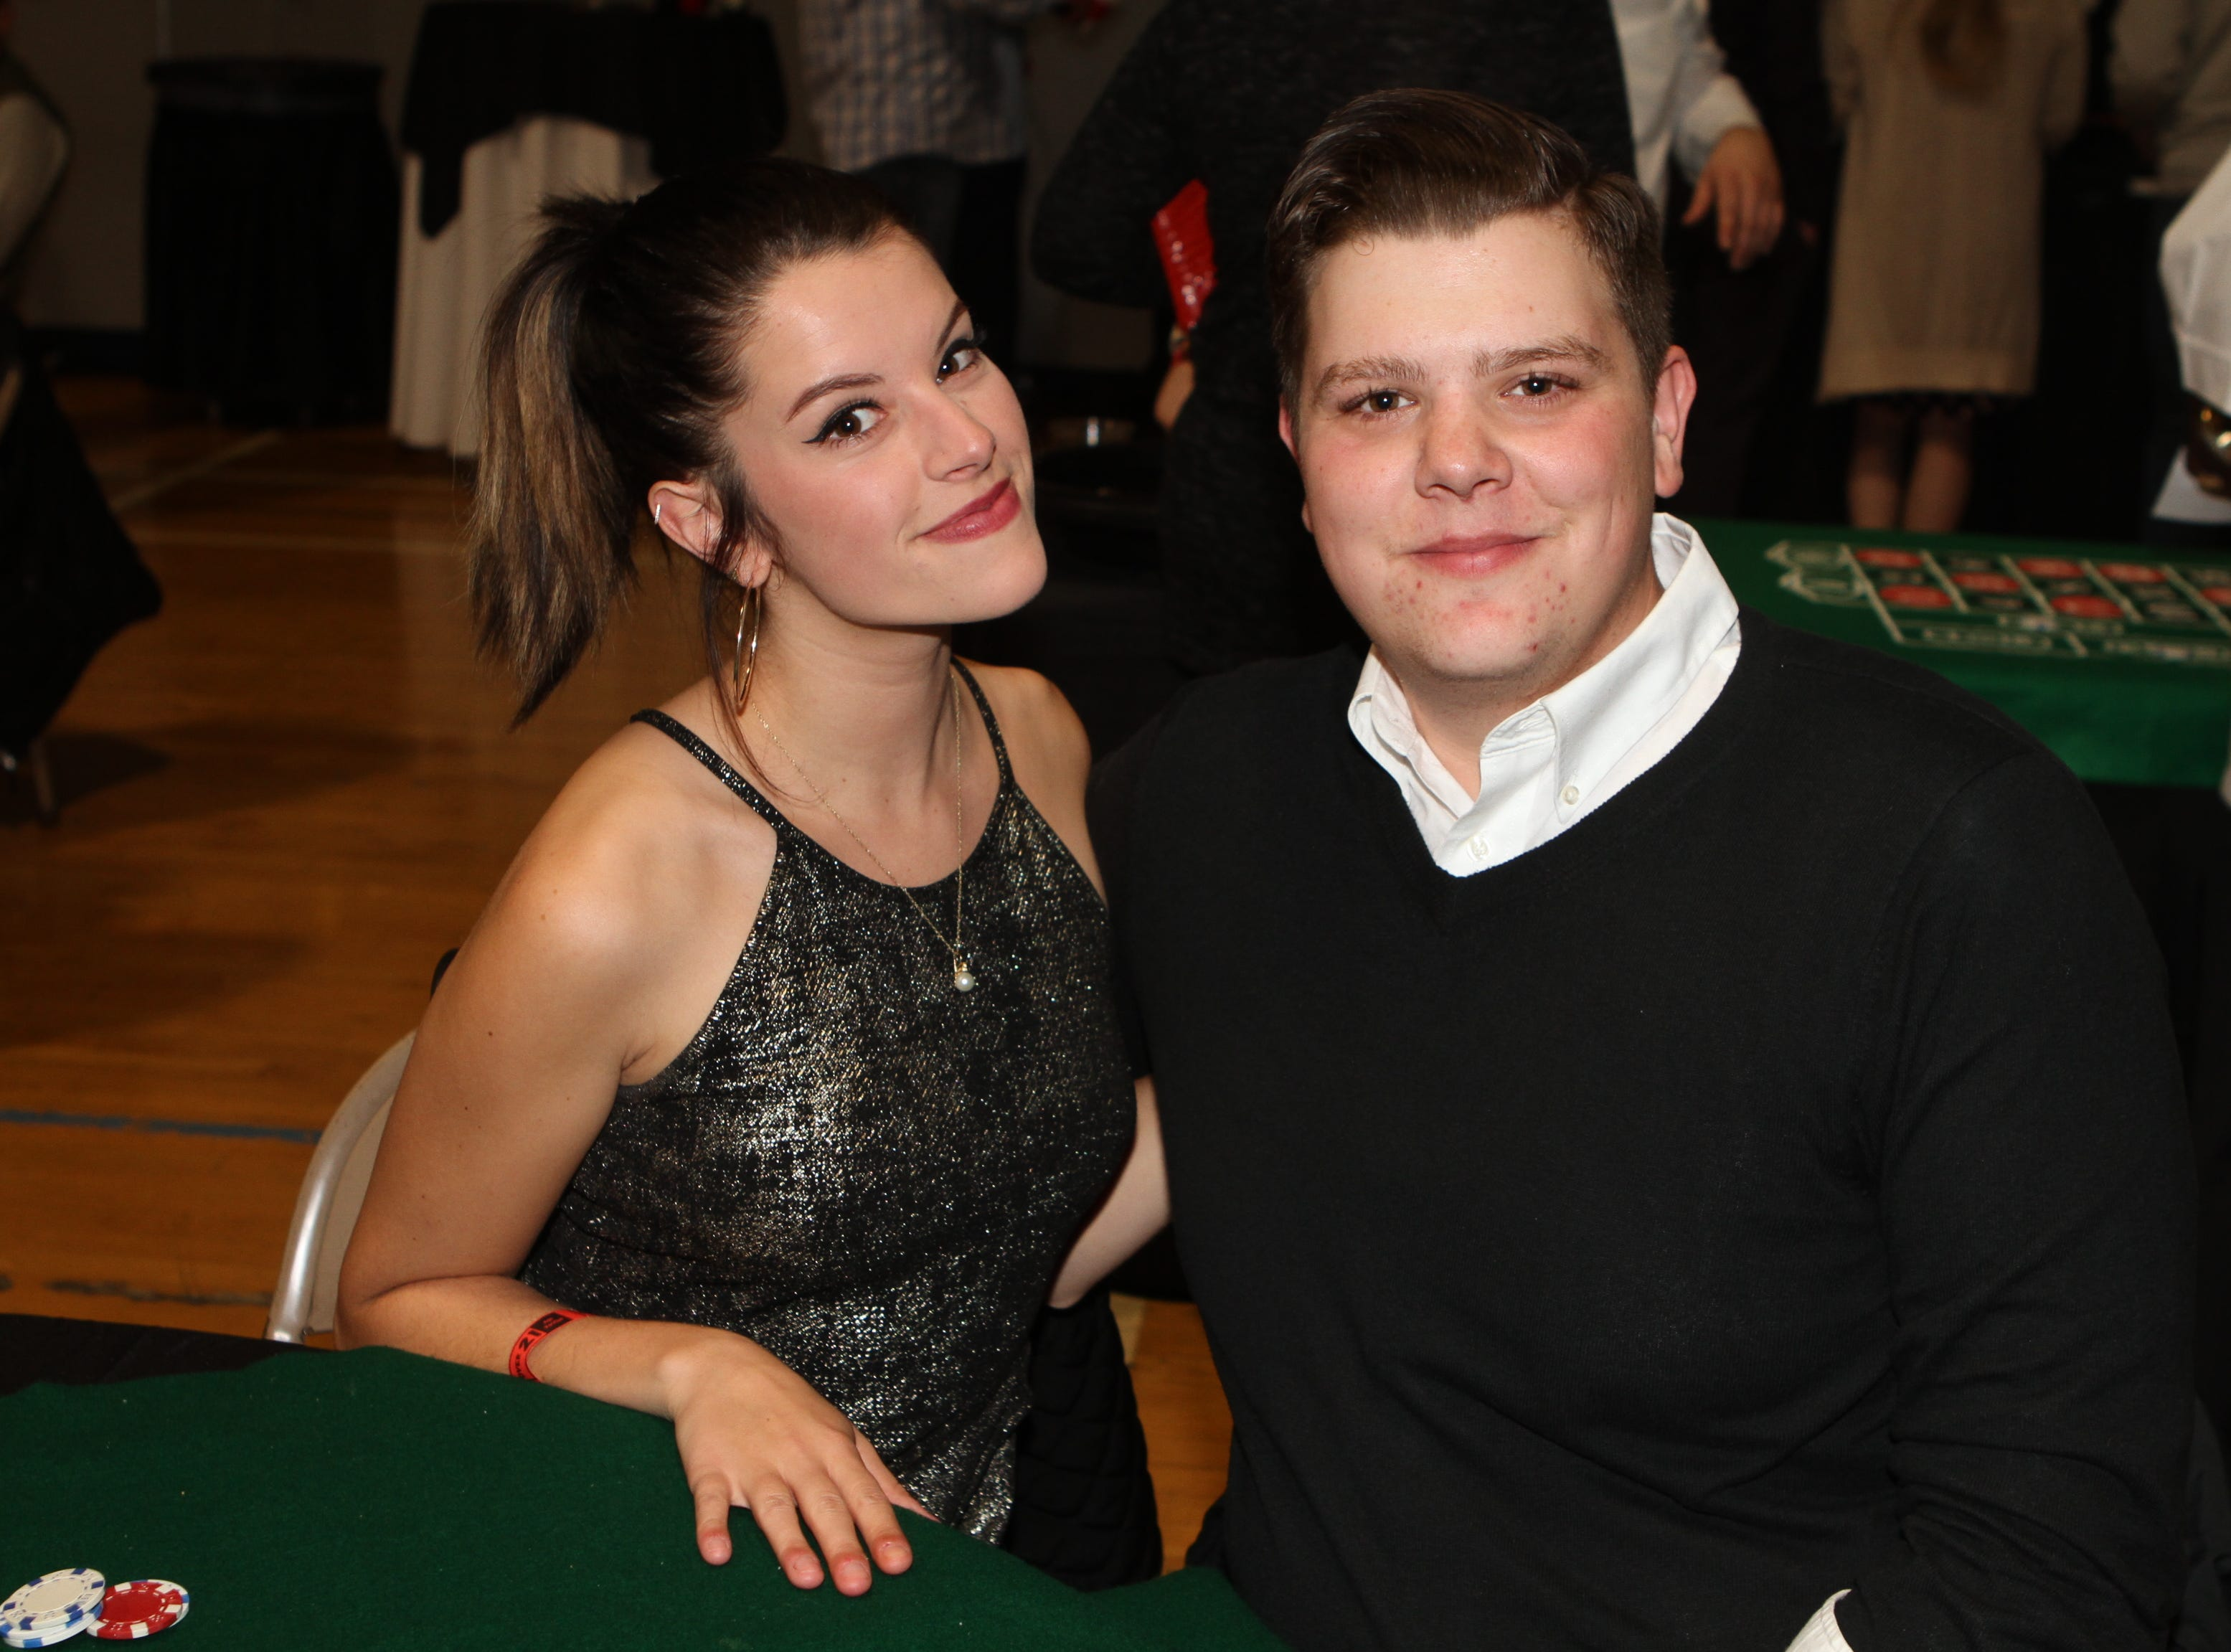 Phoebe Rozelle and T J Johnson at Casino Night at Immaculate Conception School on Saturday, Nov. 3, 2018.